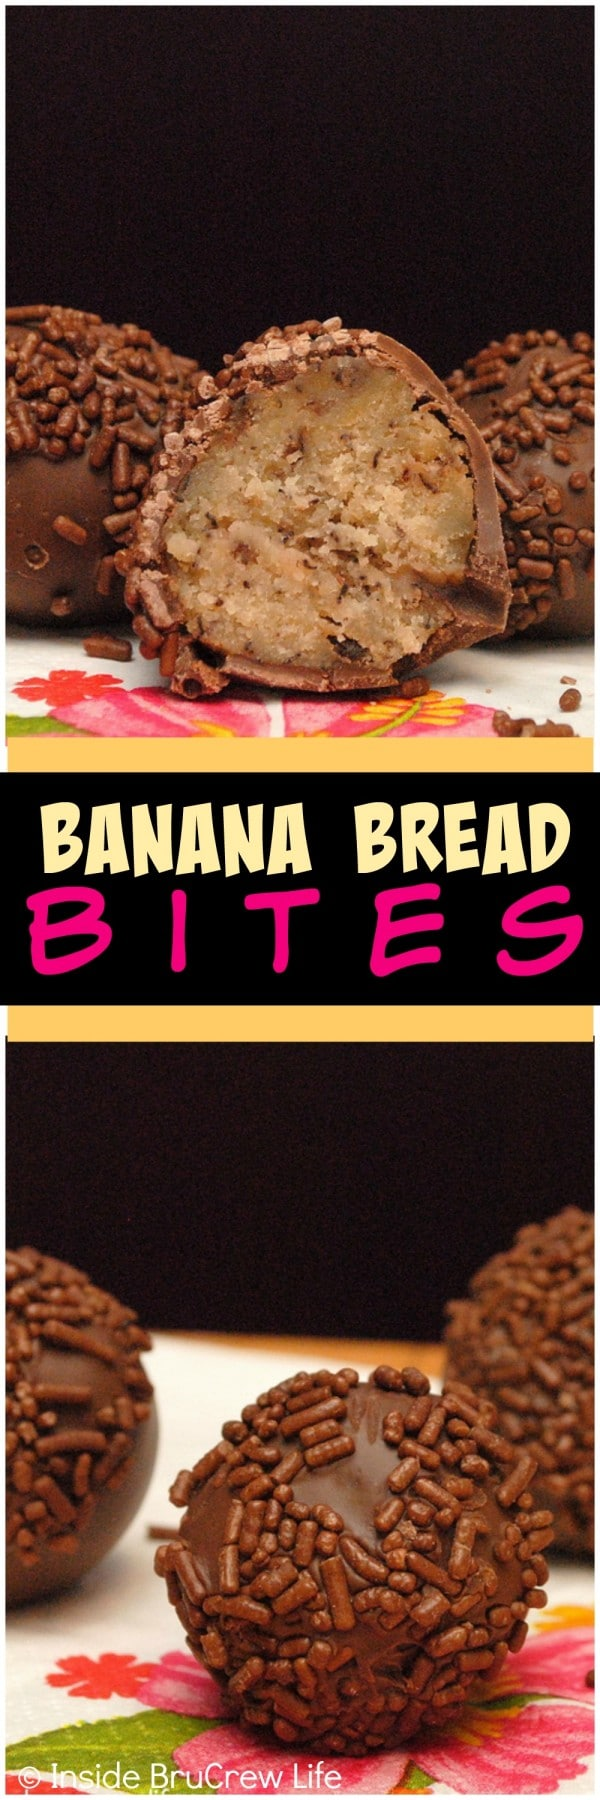 Banana Bread Bites - roll banana bread into small donut shapes and dip them in chocolate for a fun twist to breakfast. Easy recipe!